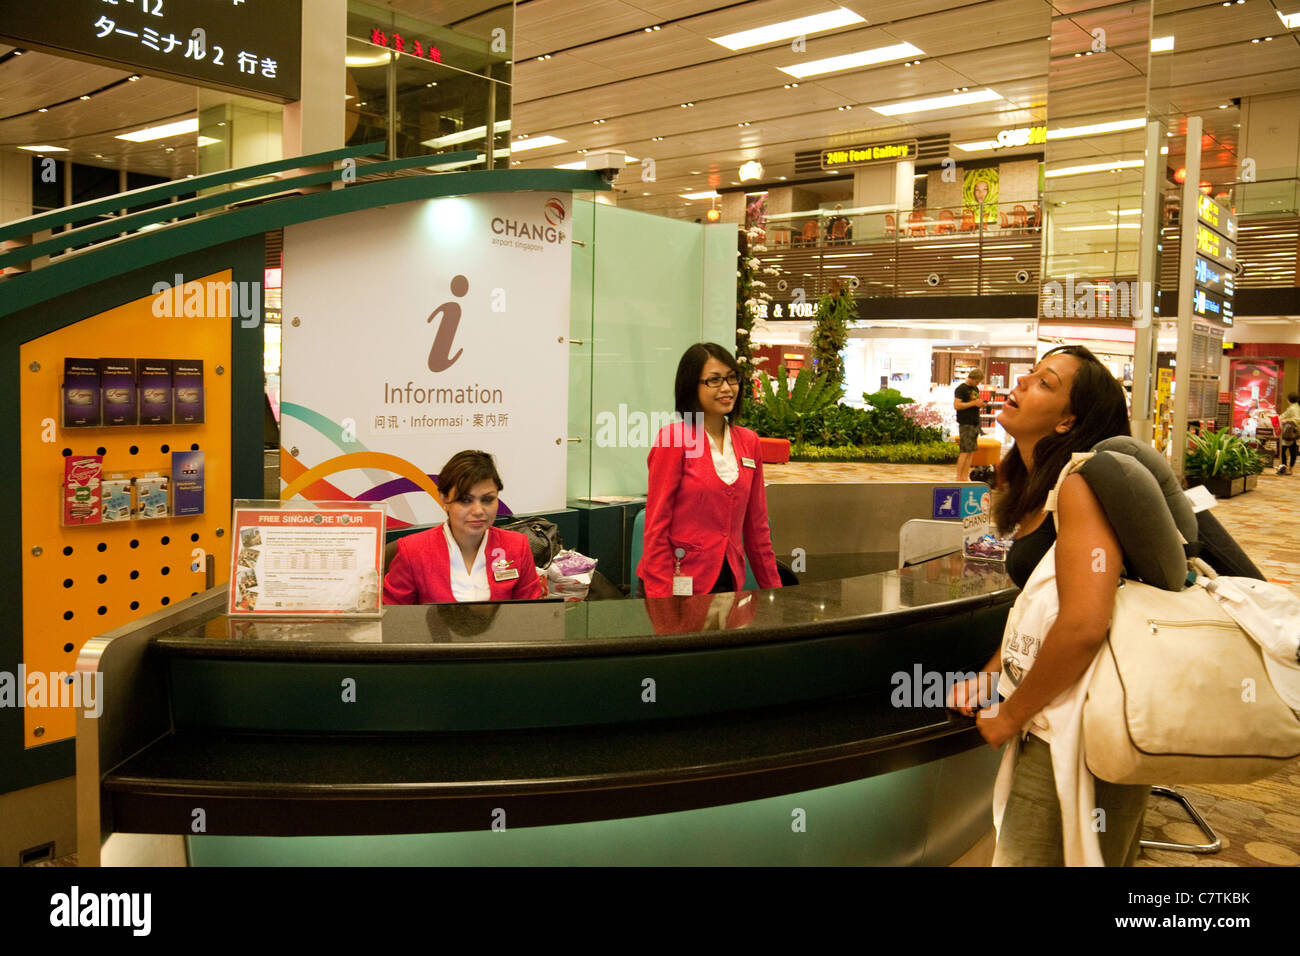 An air traveller at the Information desk, Changi airport singapore - Stock Image